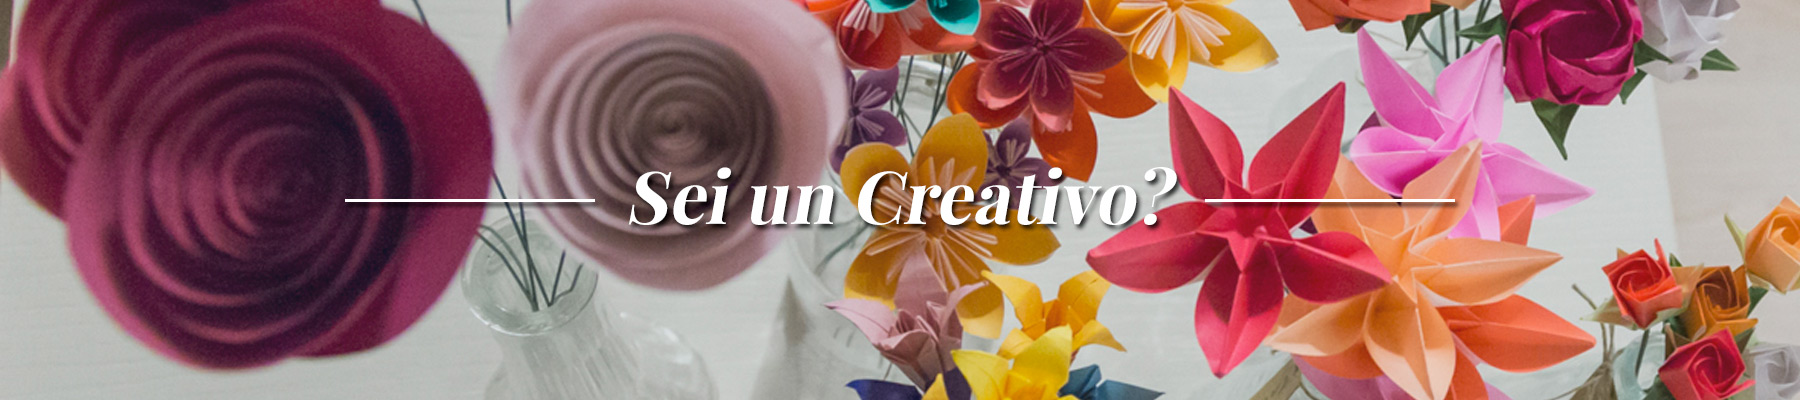 header-sei-un-creativo